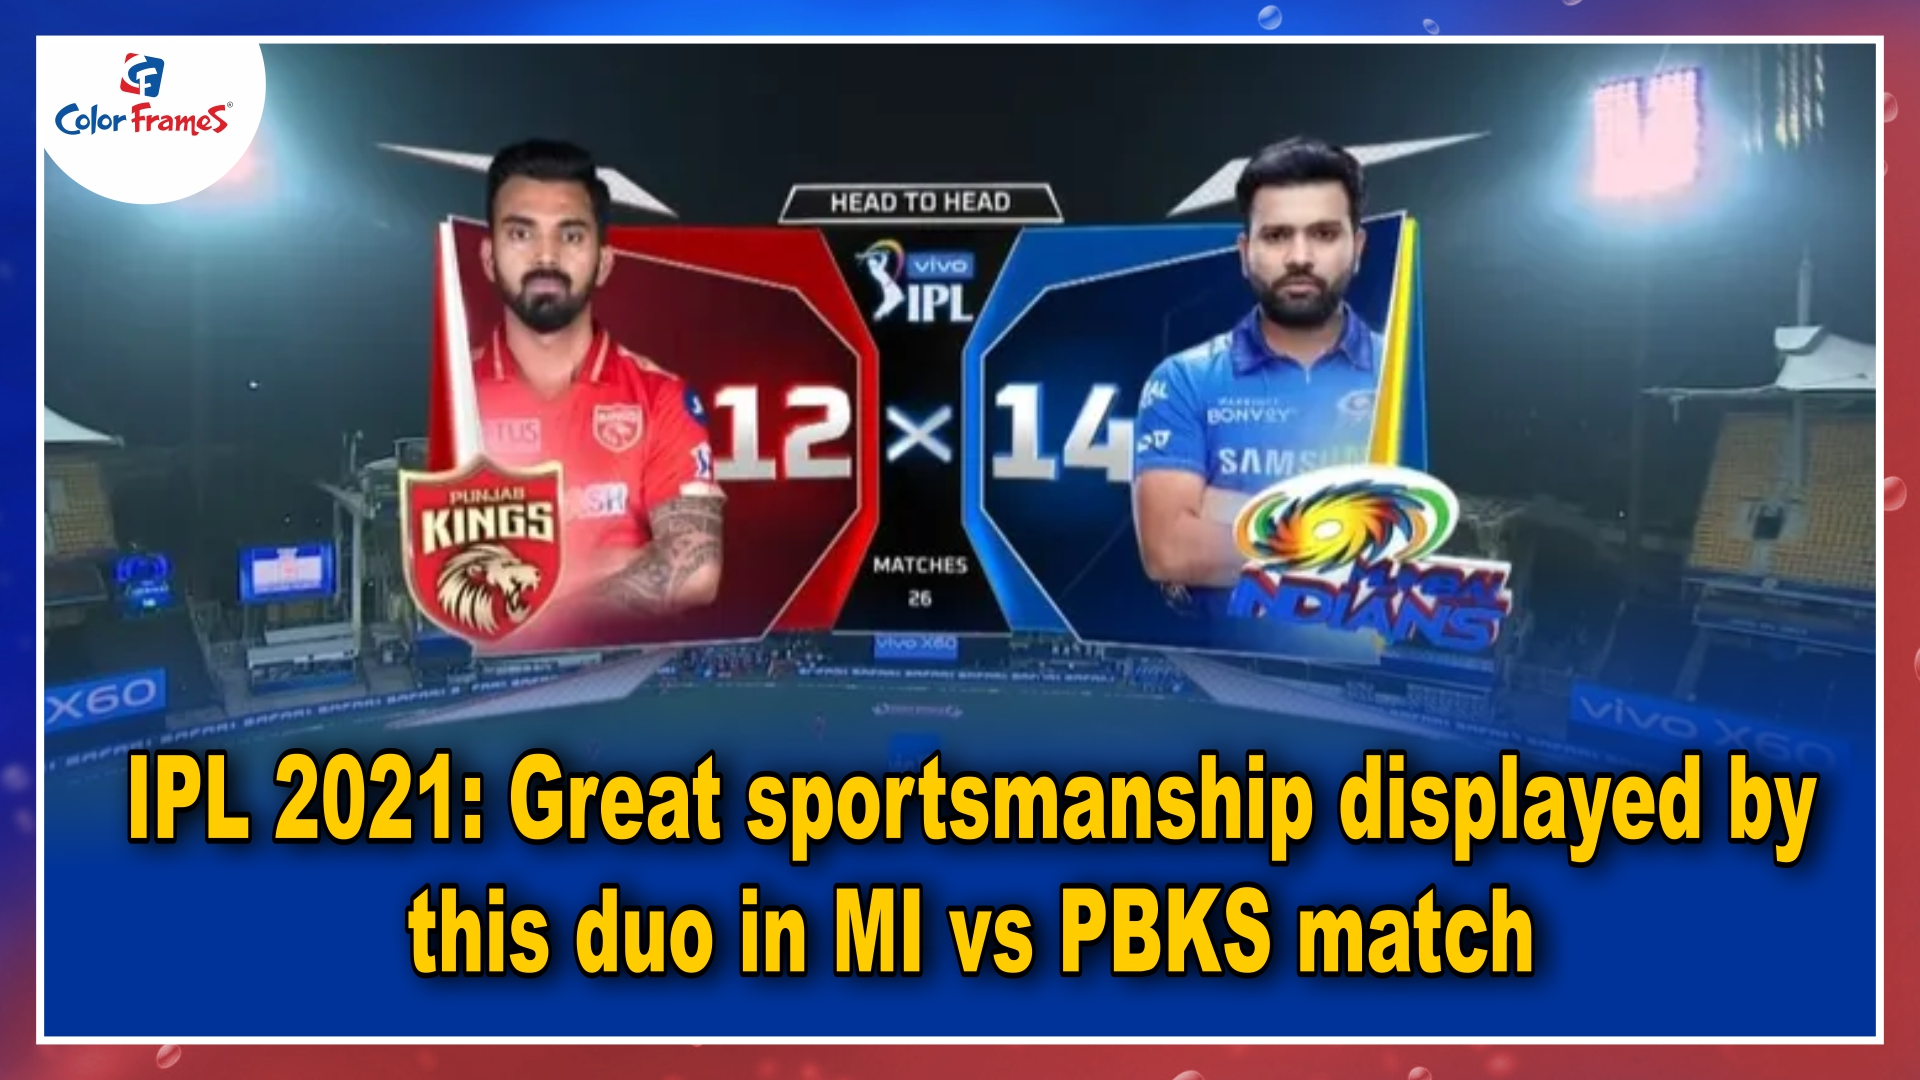 IPL 2021: Great sportsmanship displayed by this duo in MI vs PBKS match